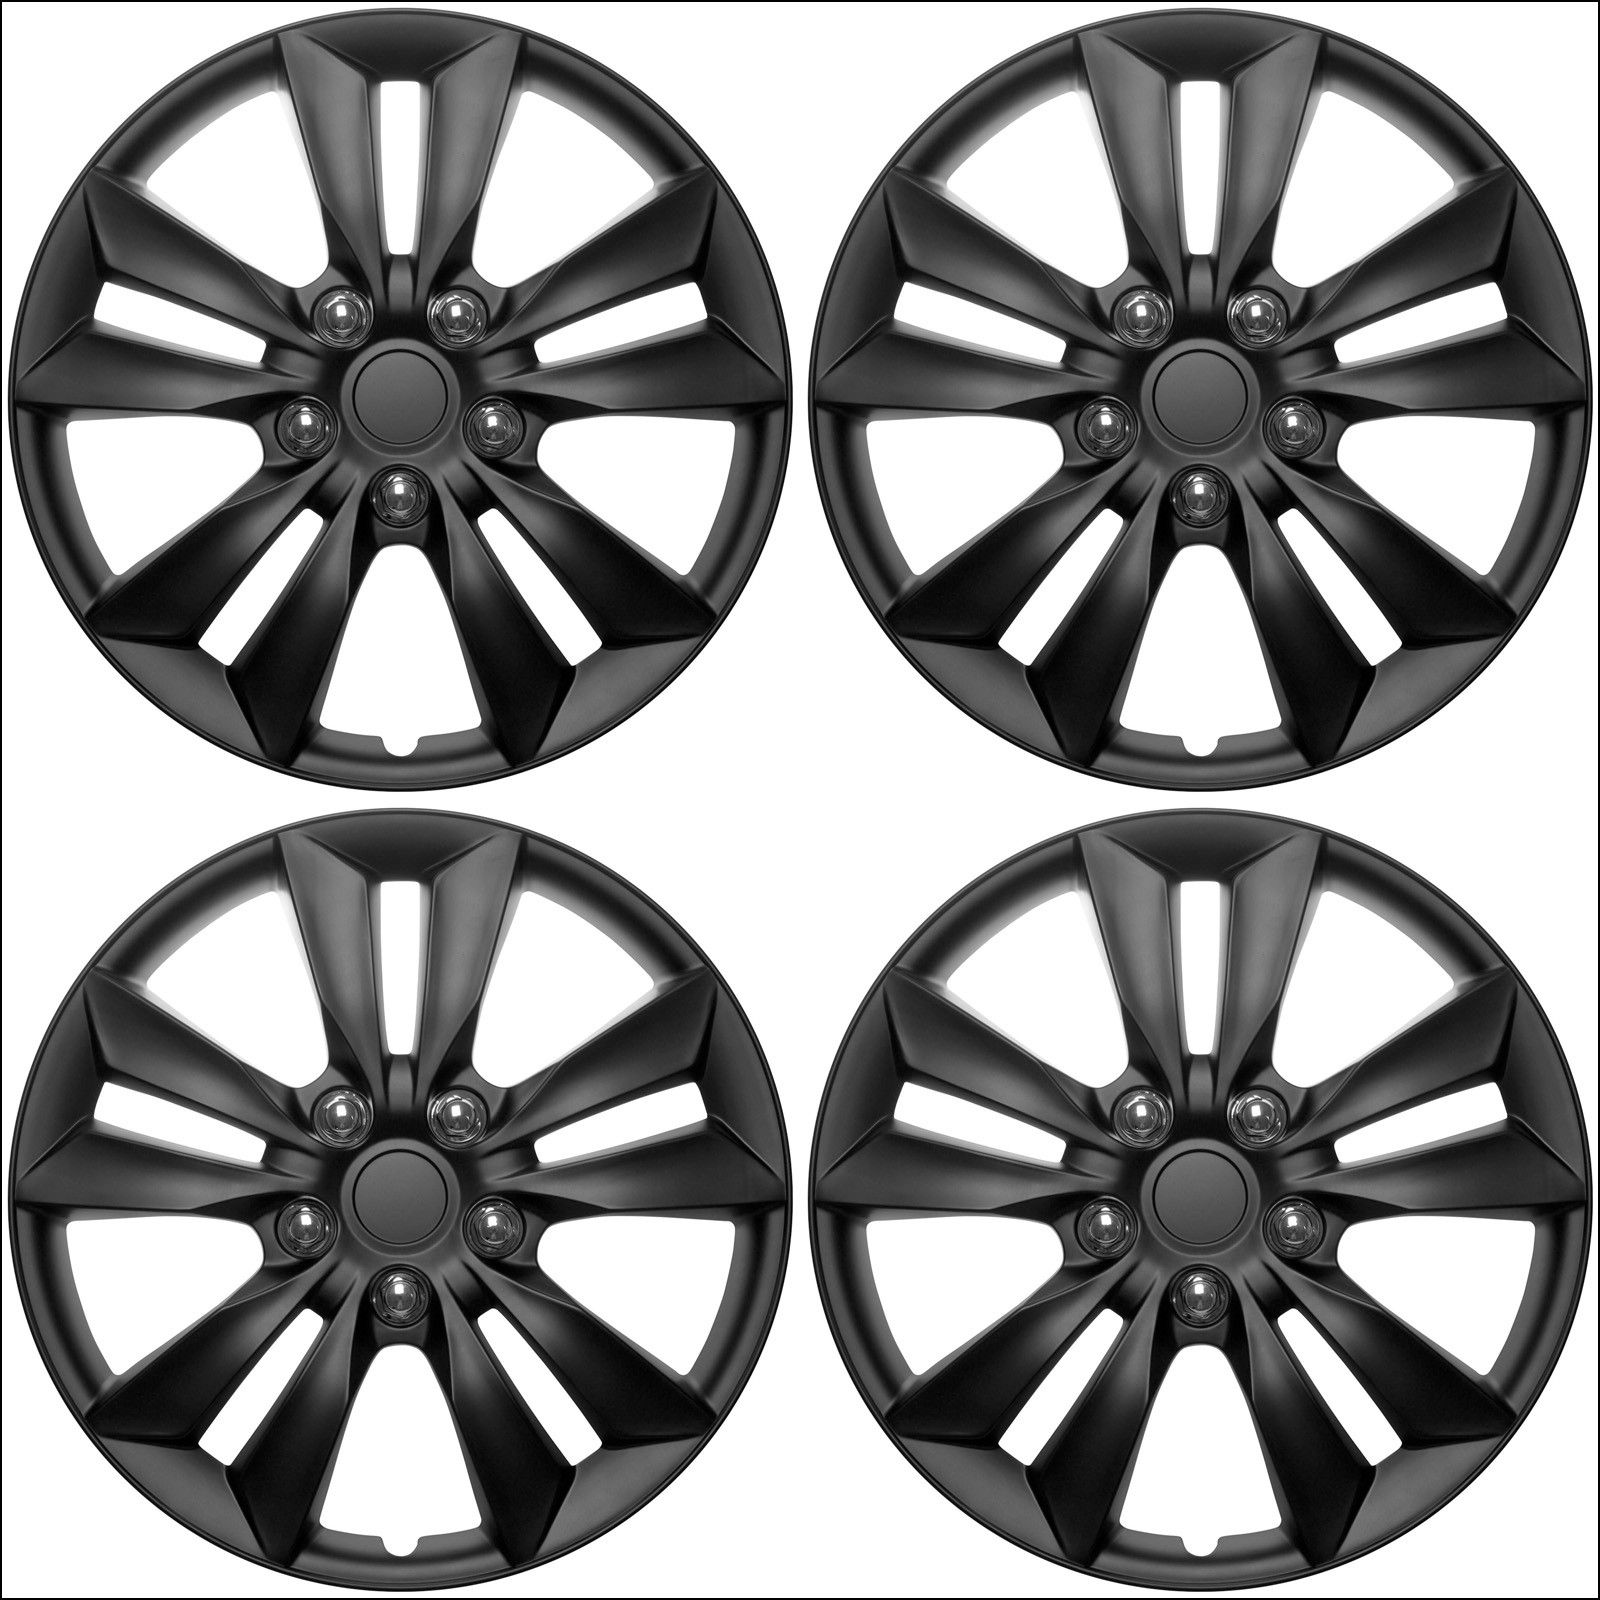 2010 Toyota Corolla Wheel Covers